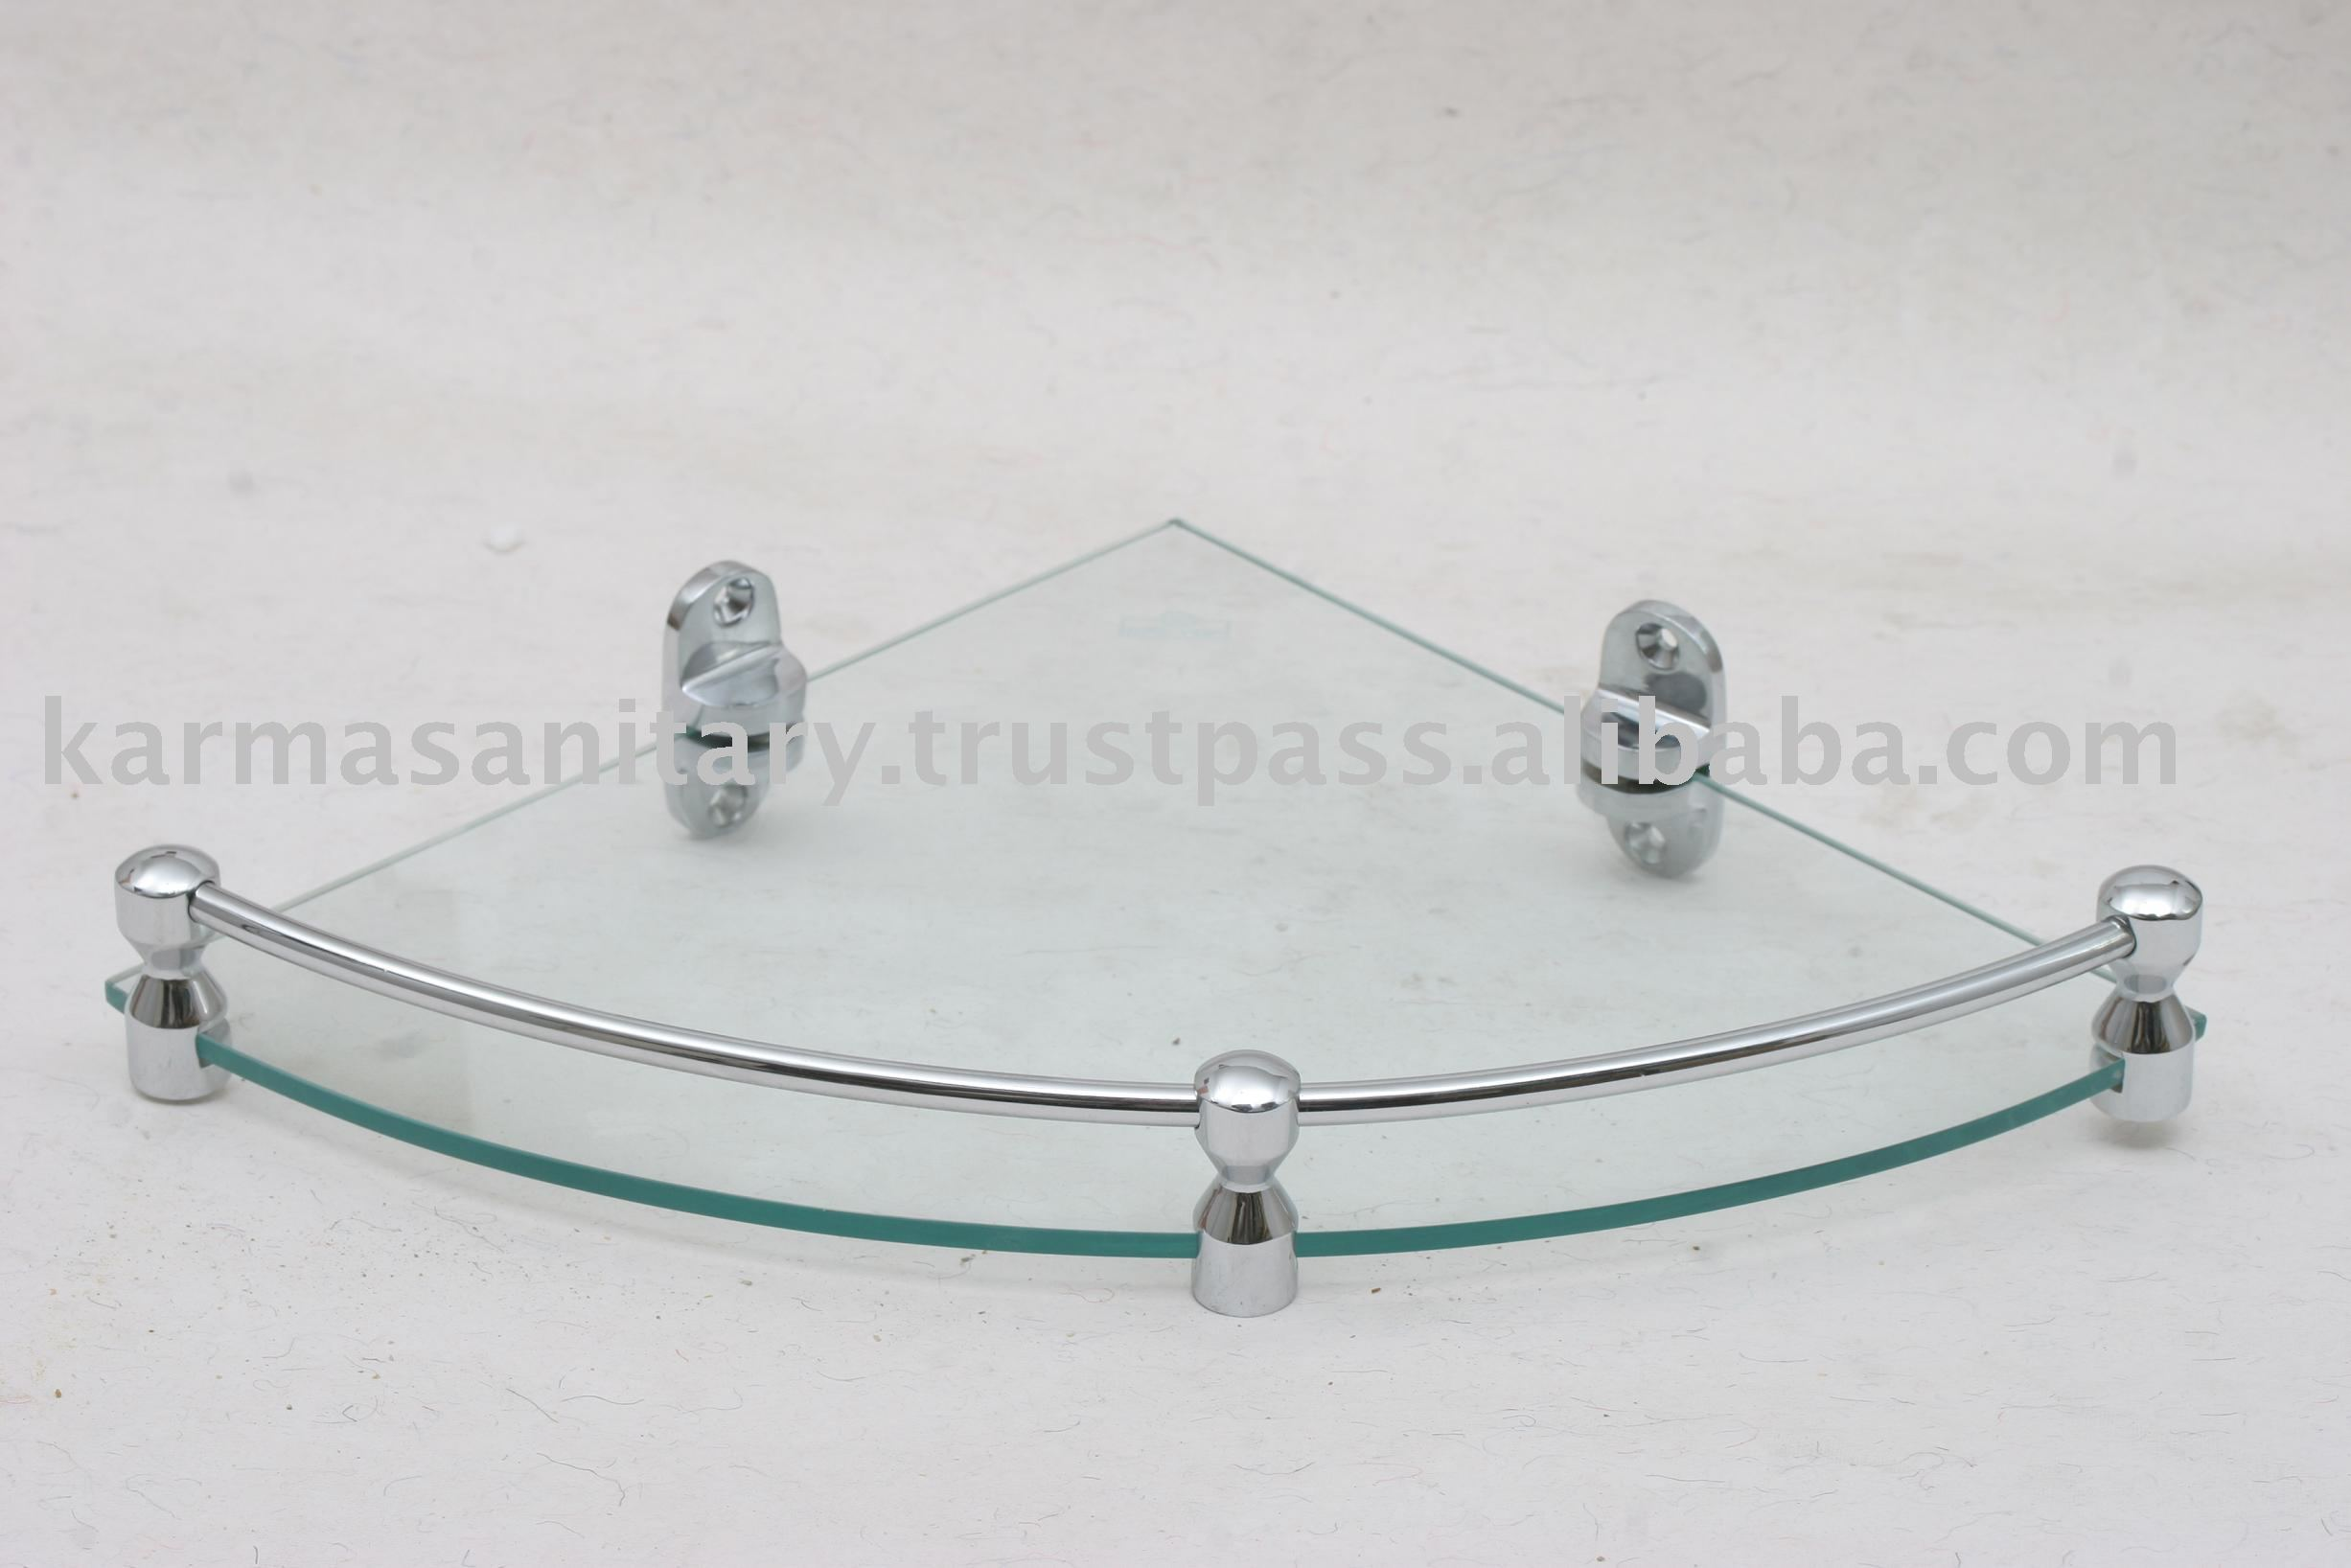 bathroom corner glass shelves buy corner shelvesbathroom accessories bathroom corner shelf product on alibabacom - Bathroom Glass Shelves